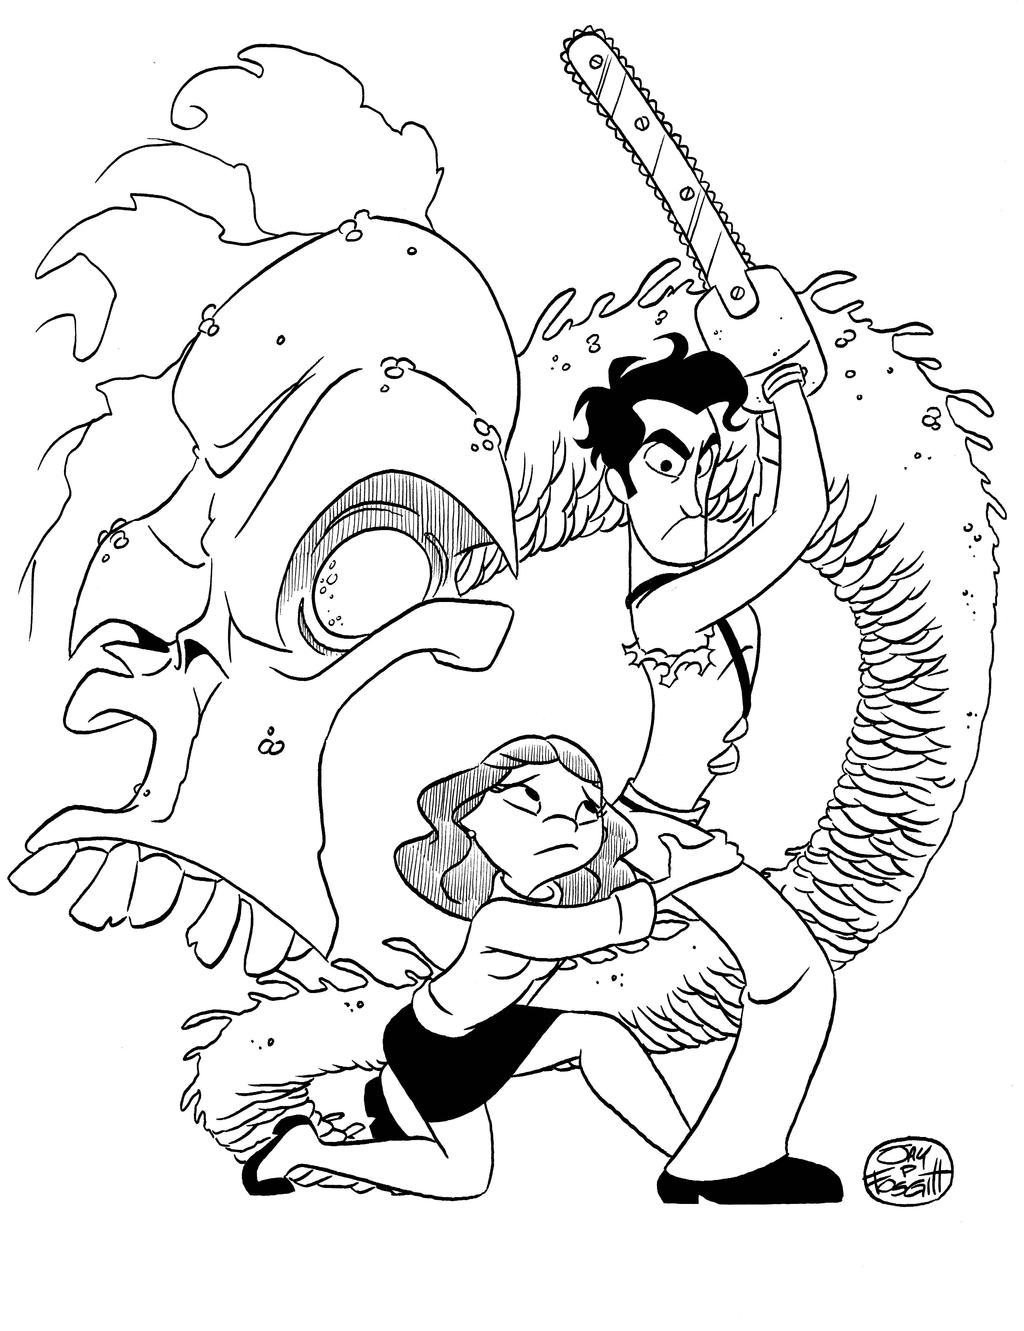 EVIL DEAD COMMISSION by JayFosgitt